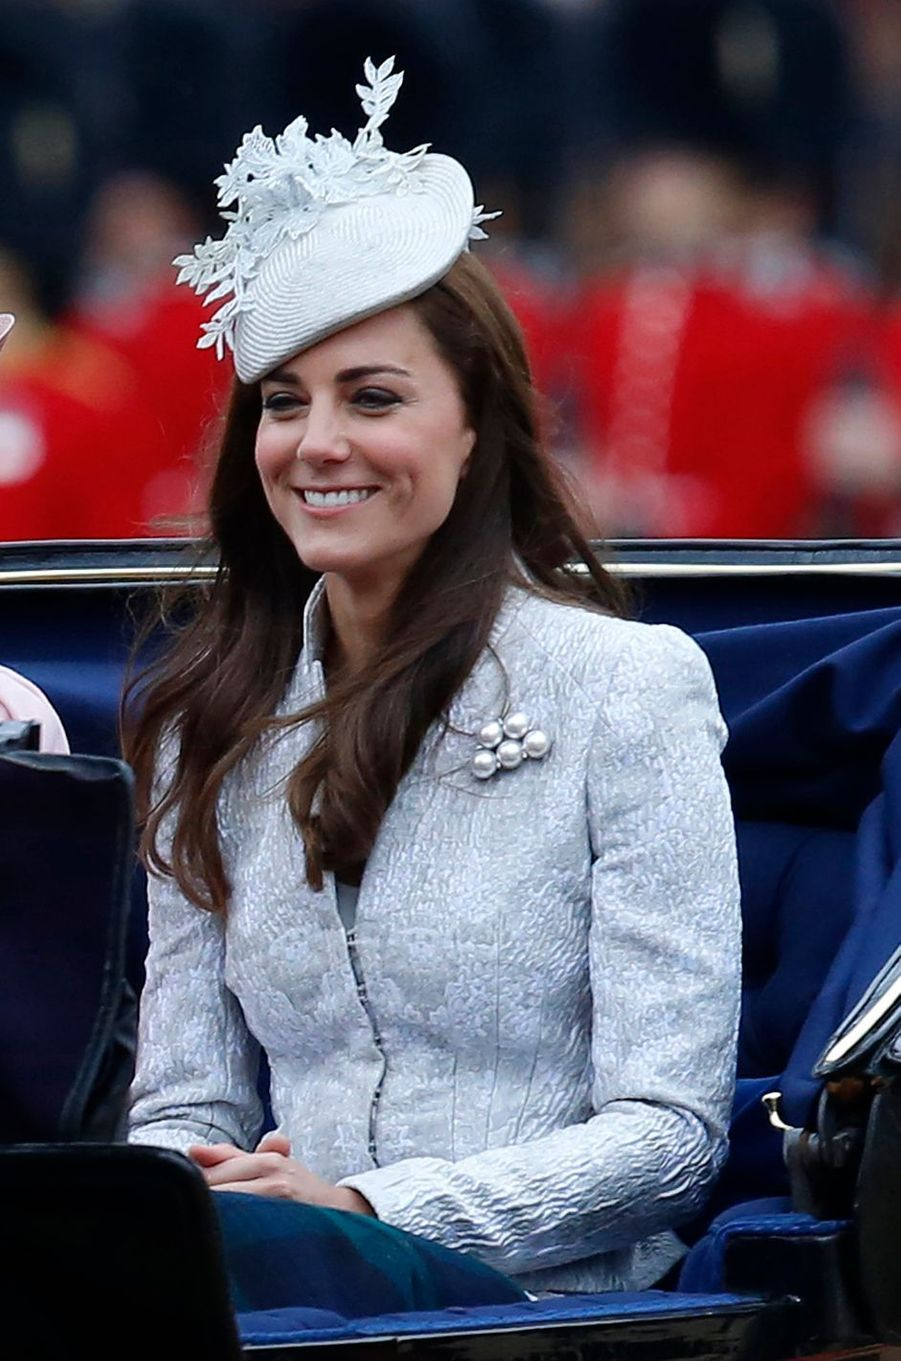 La duchesse Catherine de Cambridge à la cérémonie Trooping the Colour à Londres le 14 juin 2014